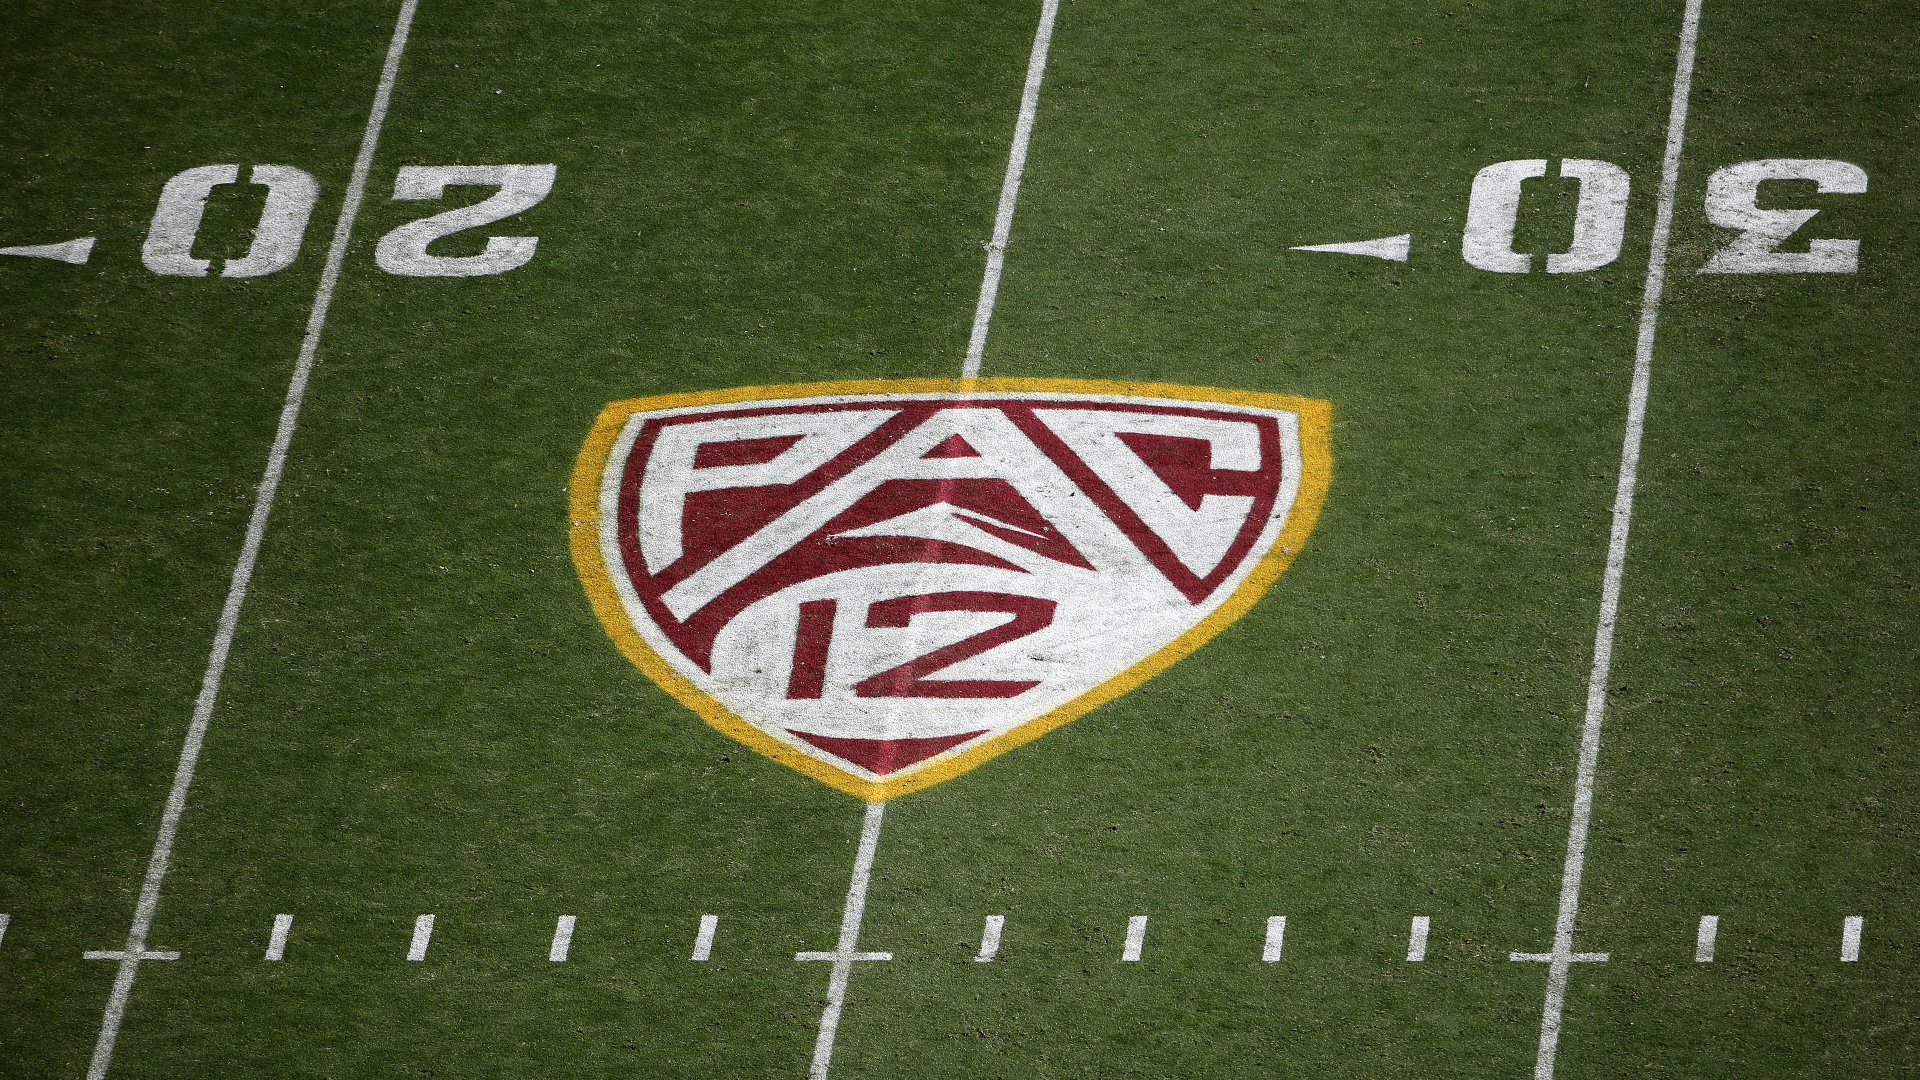 New Pac-12 member George Kliavkoff is right to lead playoff expansion